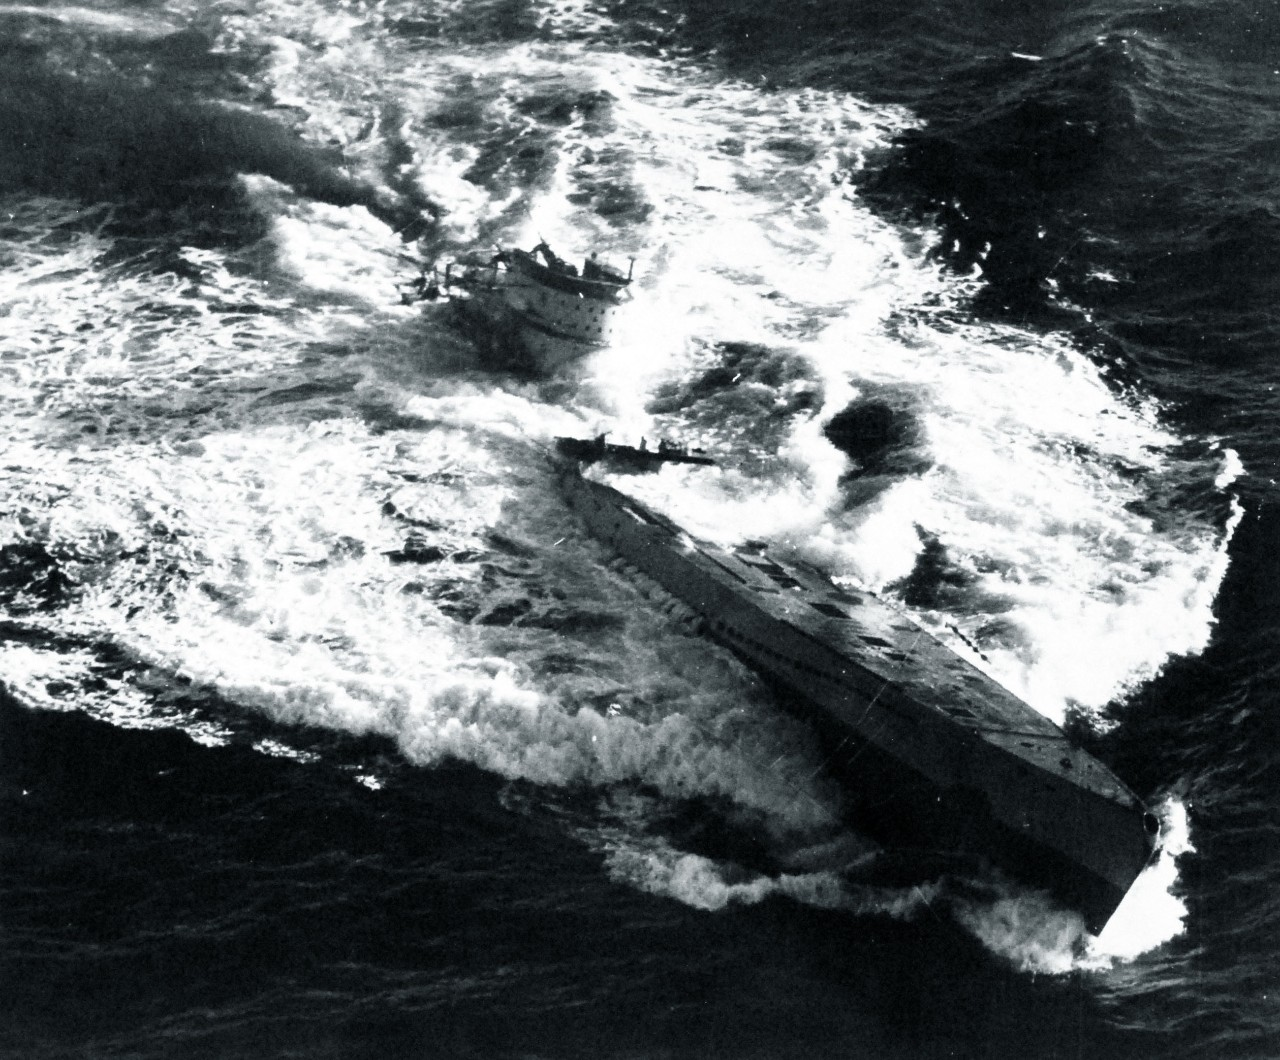 U-185 sinks, 24 August 1943. Note that the bomb that hits forward all but blasts her 4.1-inch deck gun over the side, that the U-boat lists slightly to port, and that she has lost trim by the stern. (Unattributed U.S. Navy Photograph 80-G-77196, National Archives and Records Administration, Still Pictures Branch, College Park, Md.)